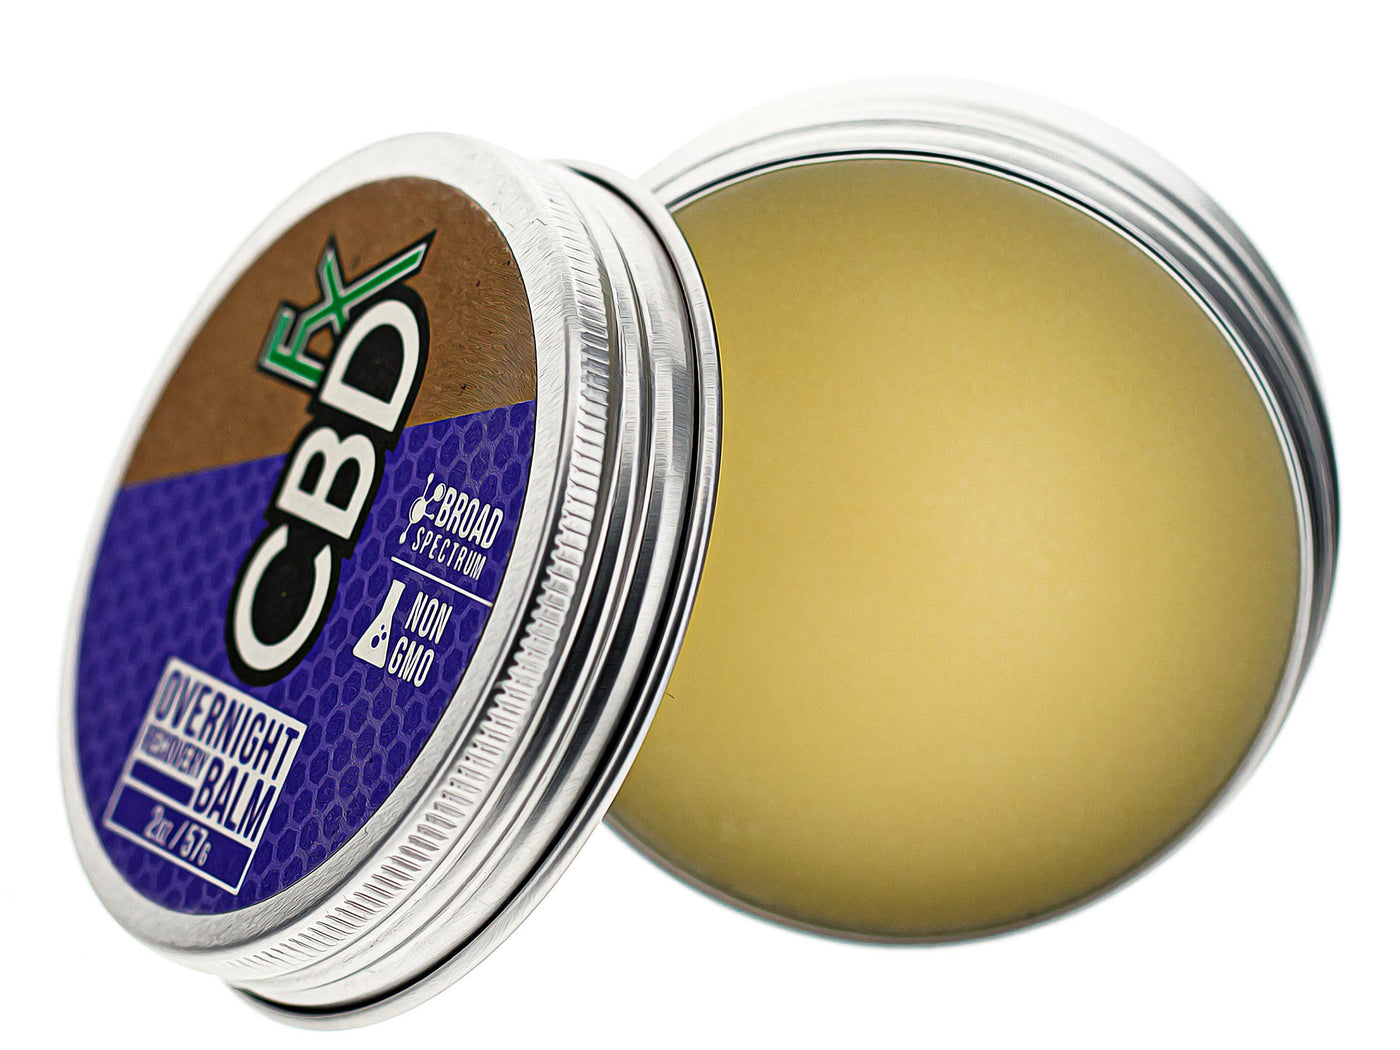 CBDfx Overnight Recovery CBD Balm Description Three